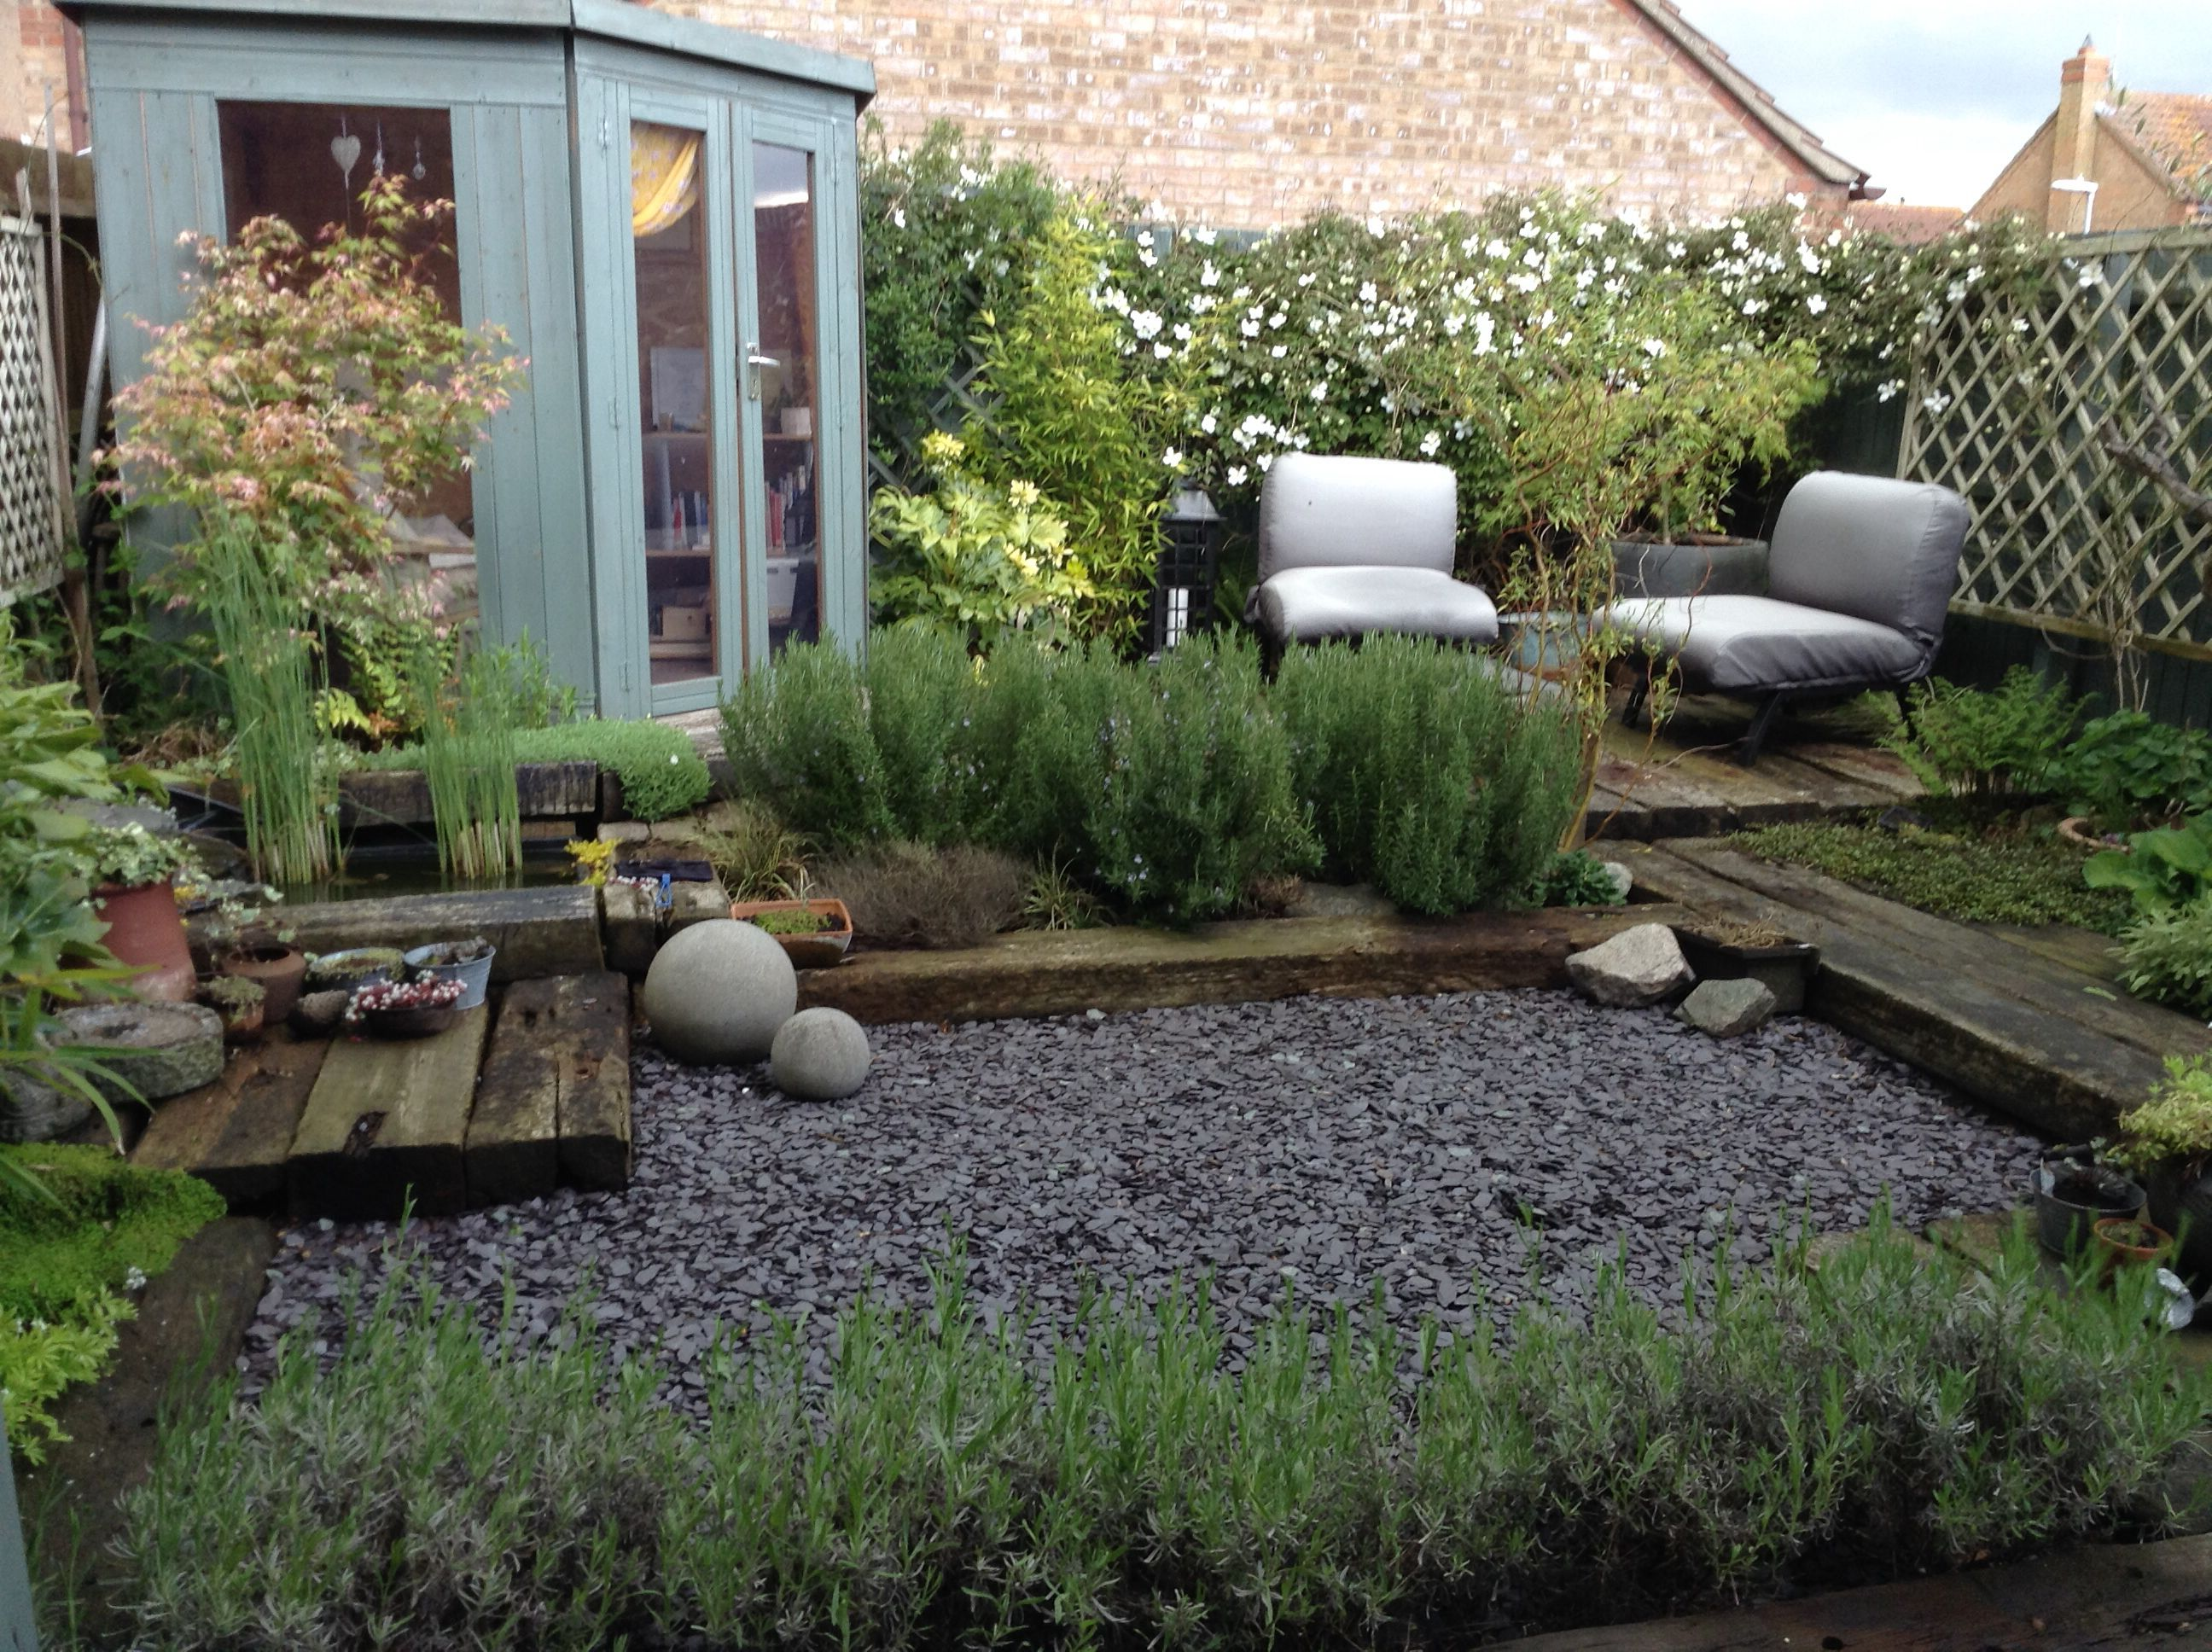 My garden, railway sleepers, slate and planting | Сад | Pinterest ...